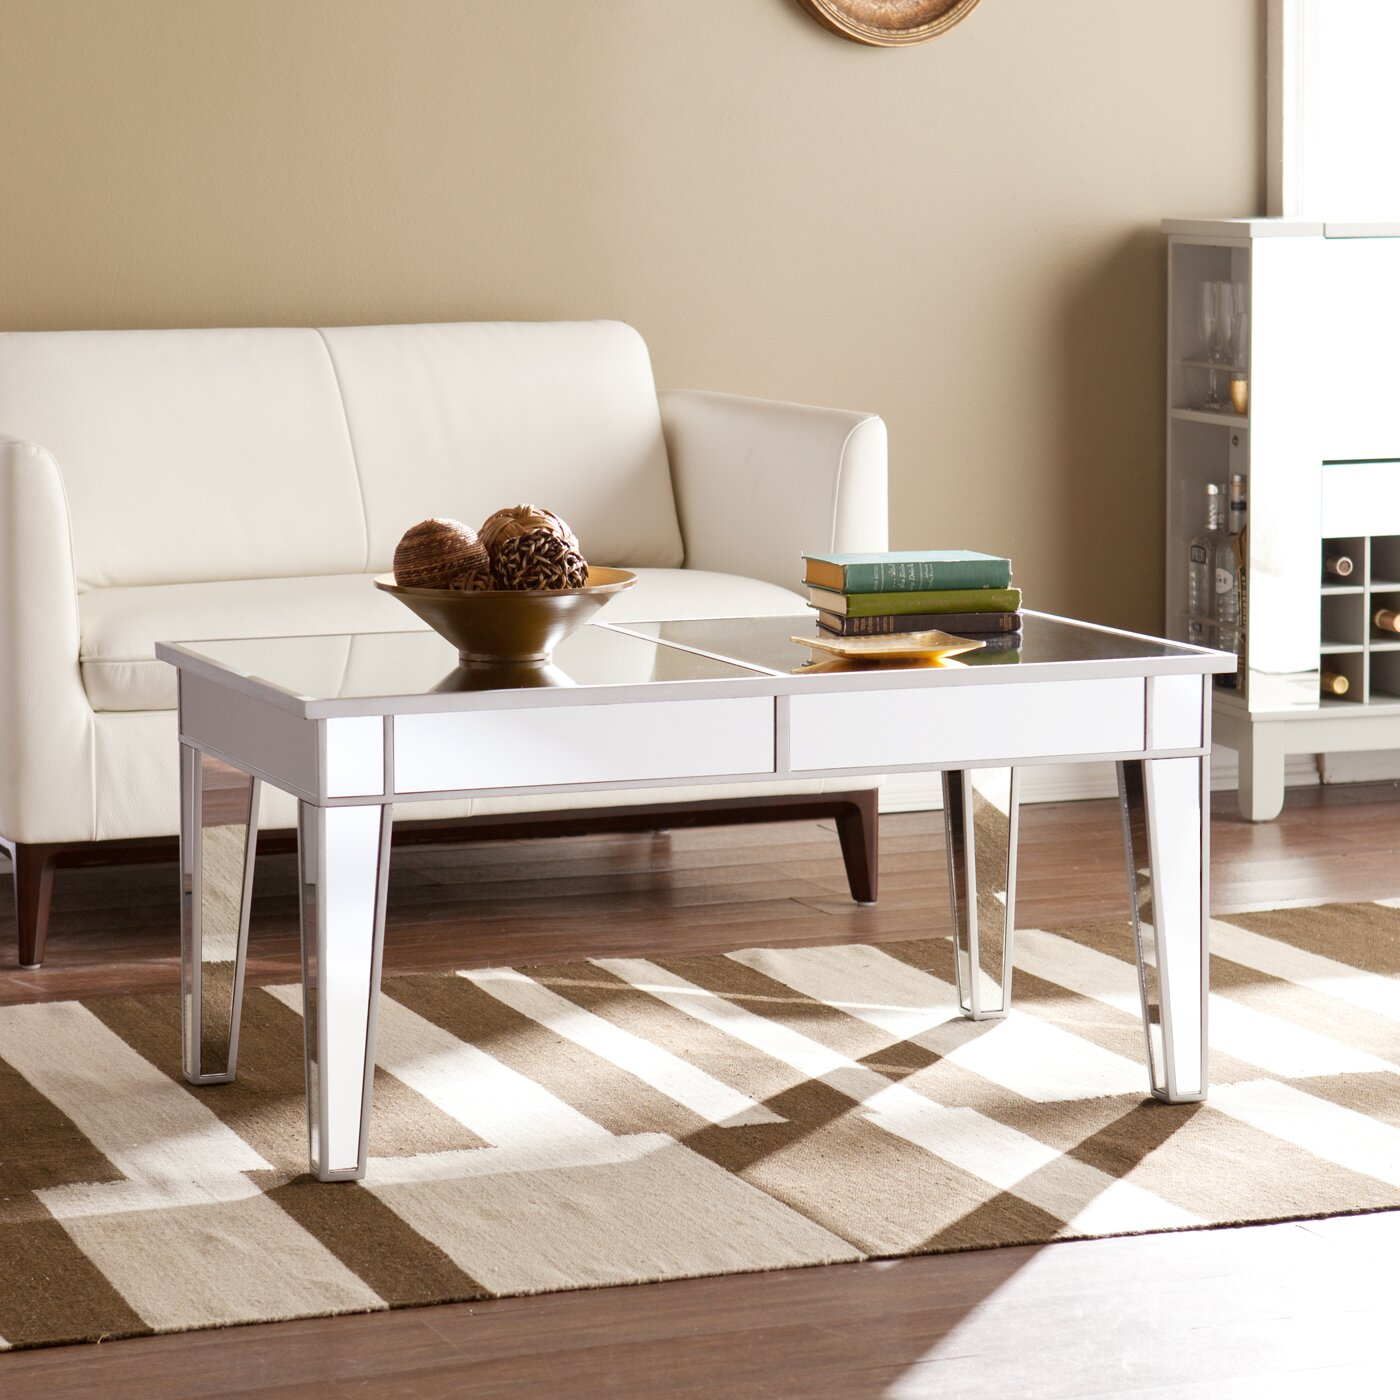 Ghent mirrored coffee table wayfair for Wayfair mirrored coffee table